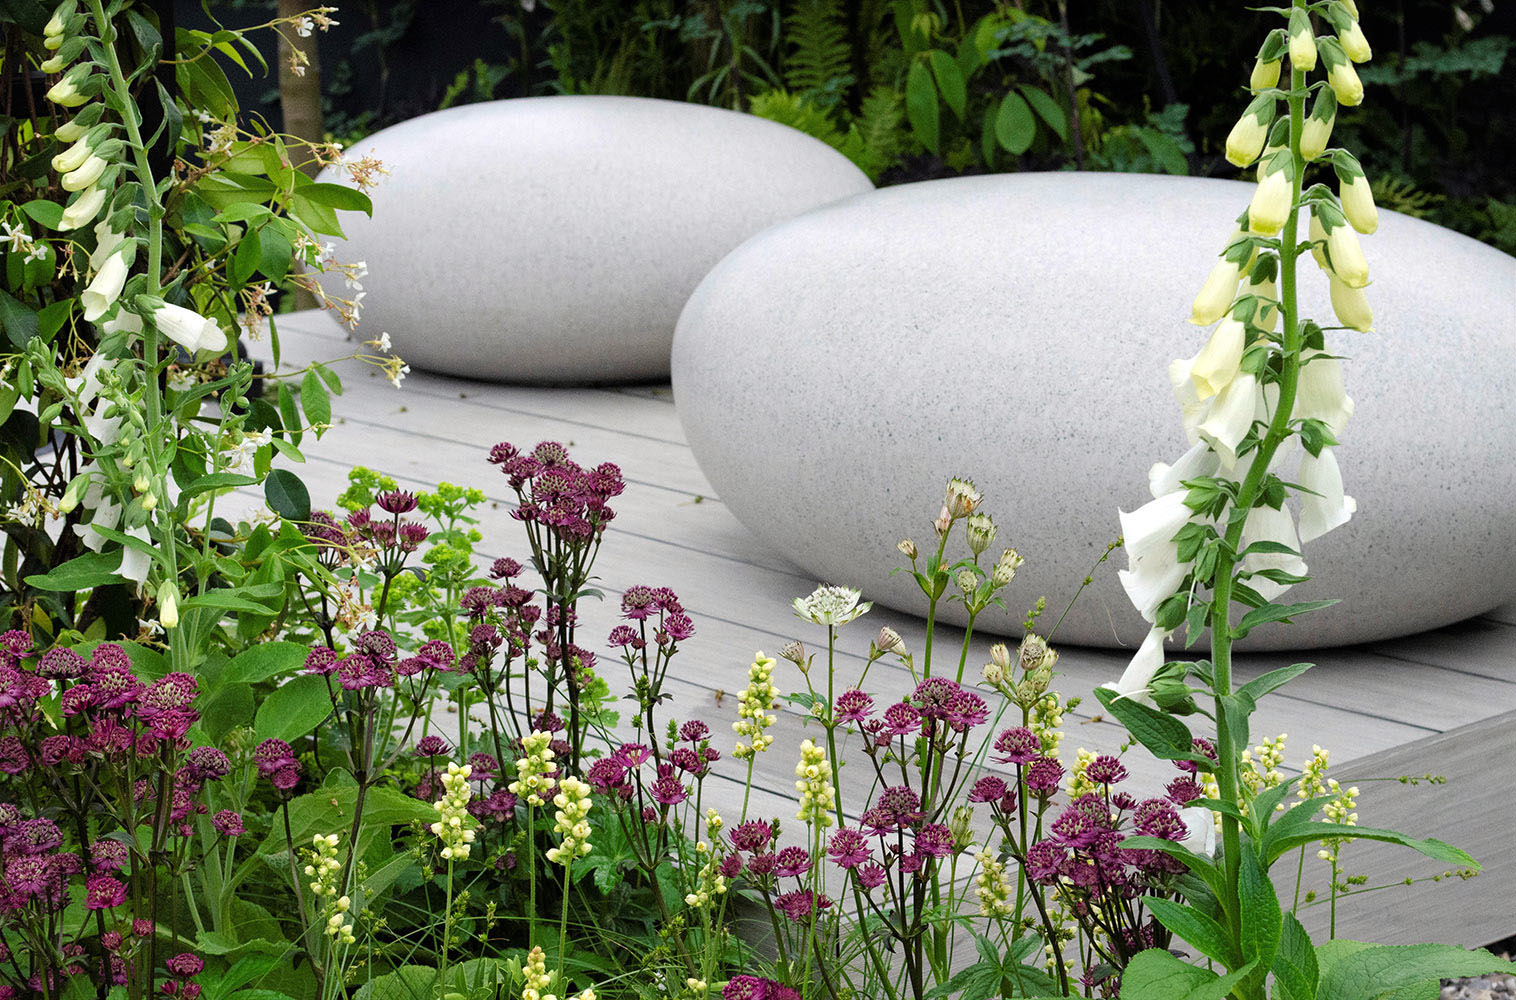 A view of Rae Wilkinson's award winning 'Space Within' show garden design at RHS Chatsworth 2019